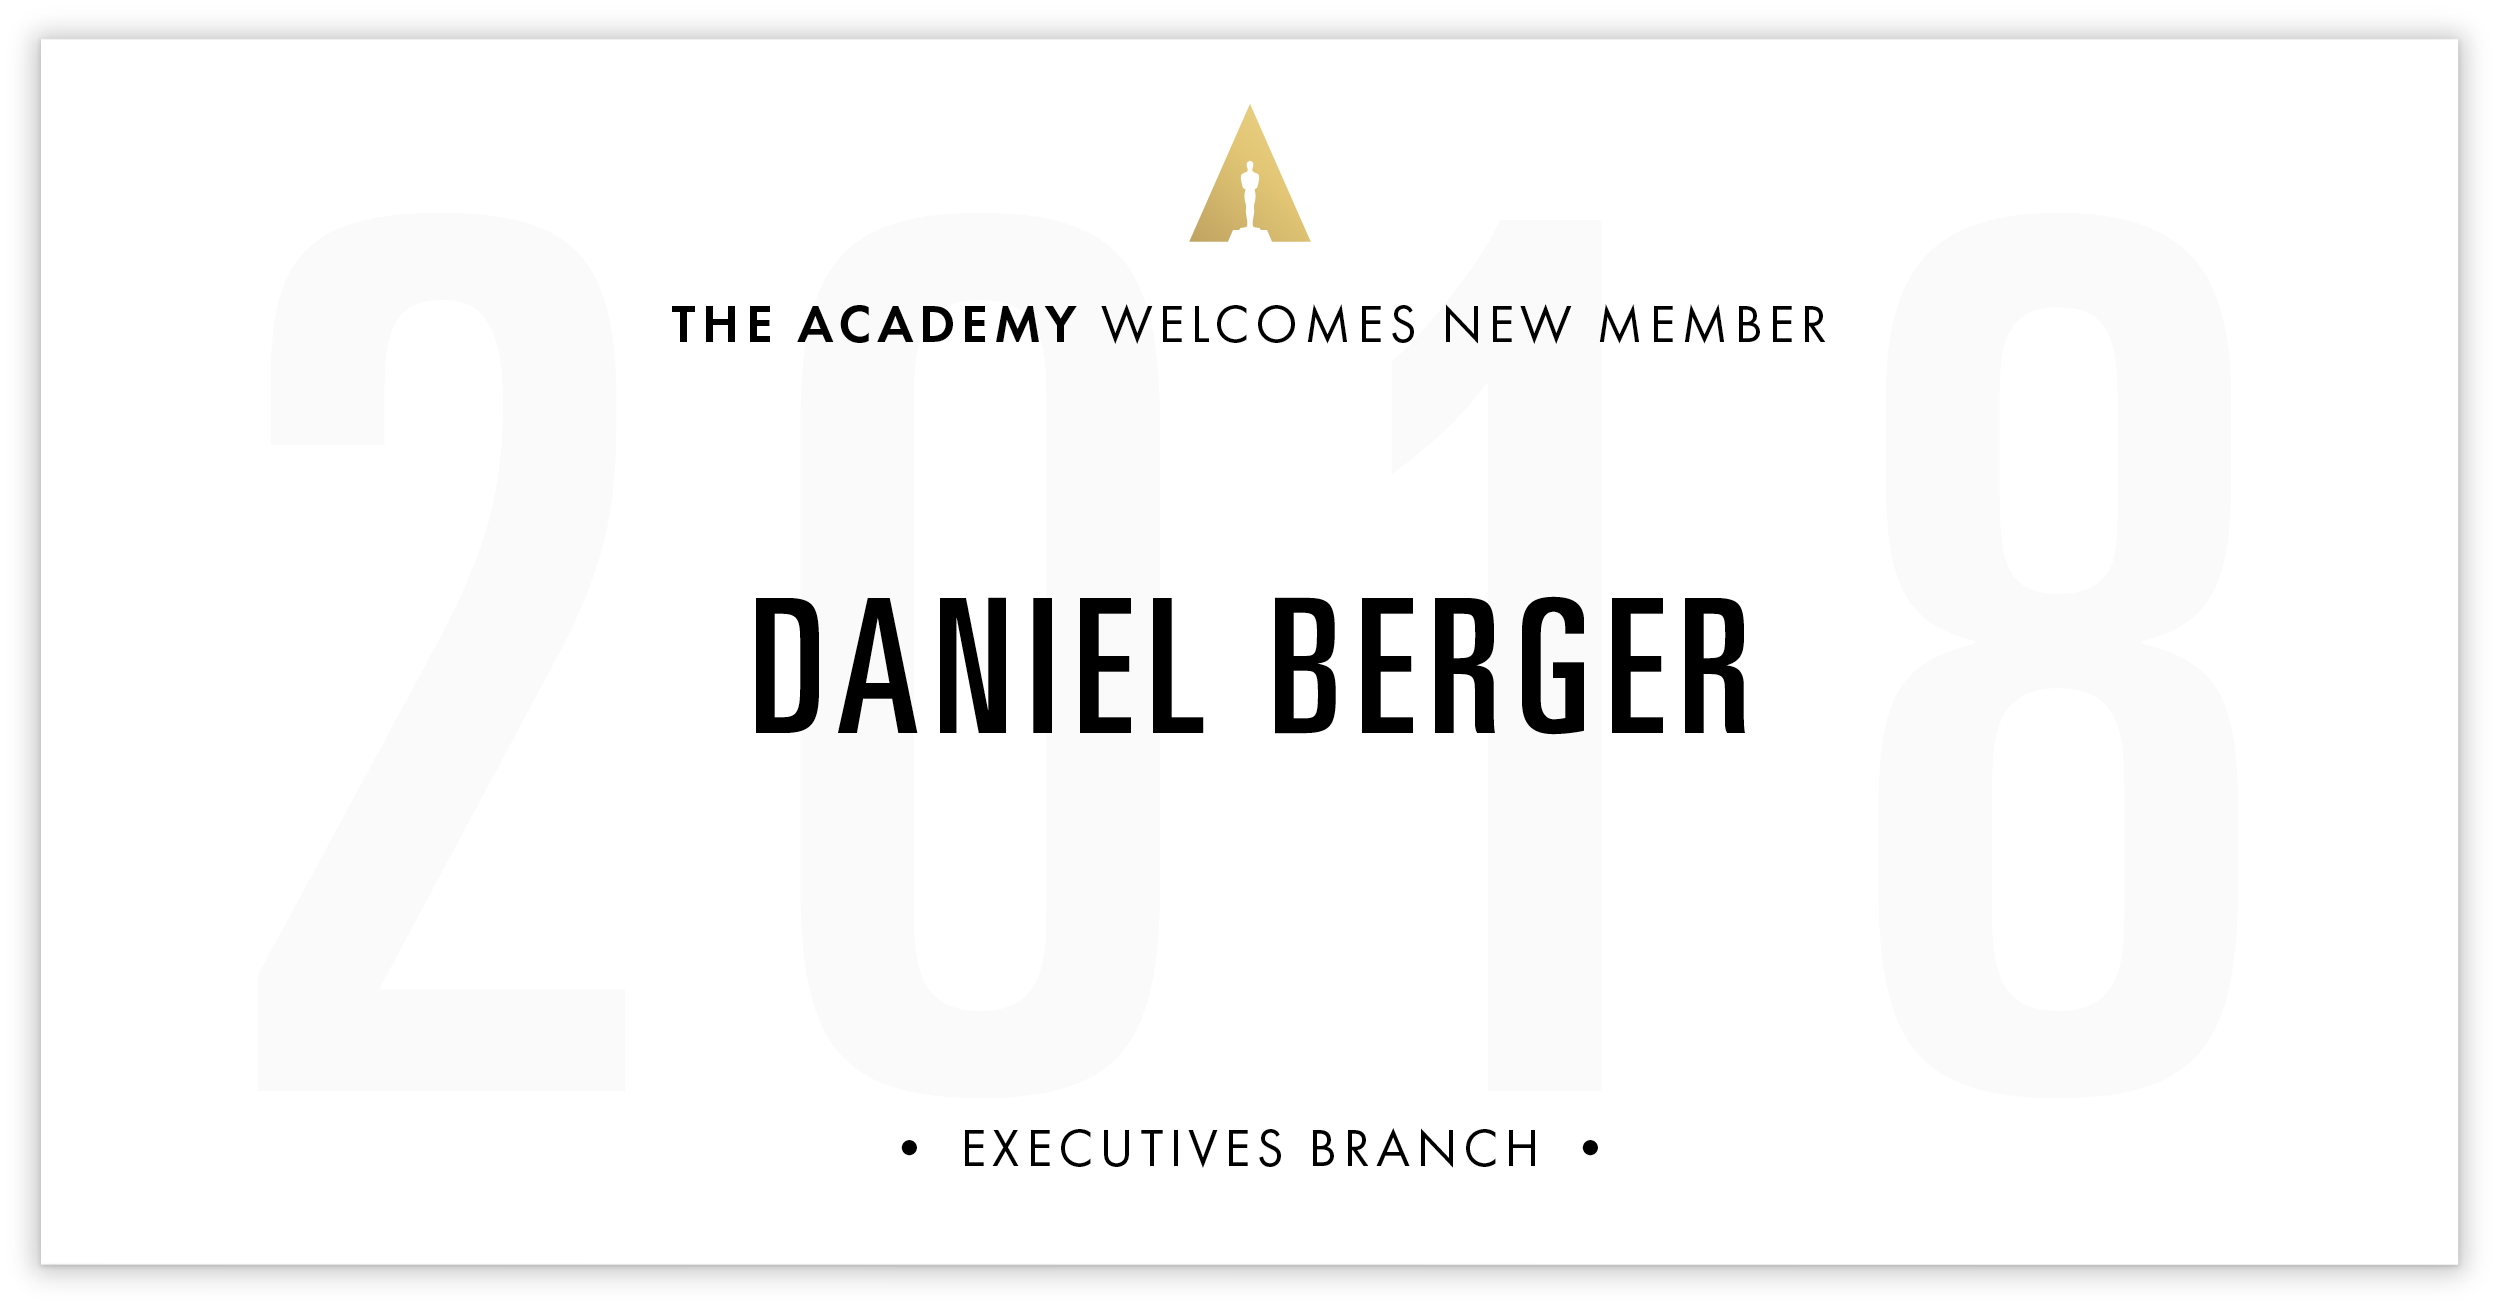 Daniel Berger is invited!